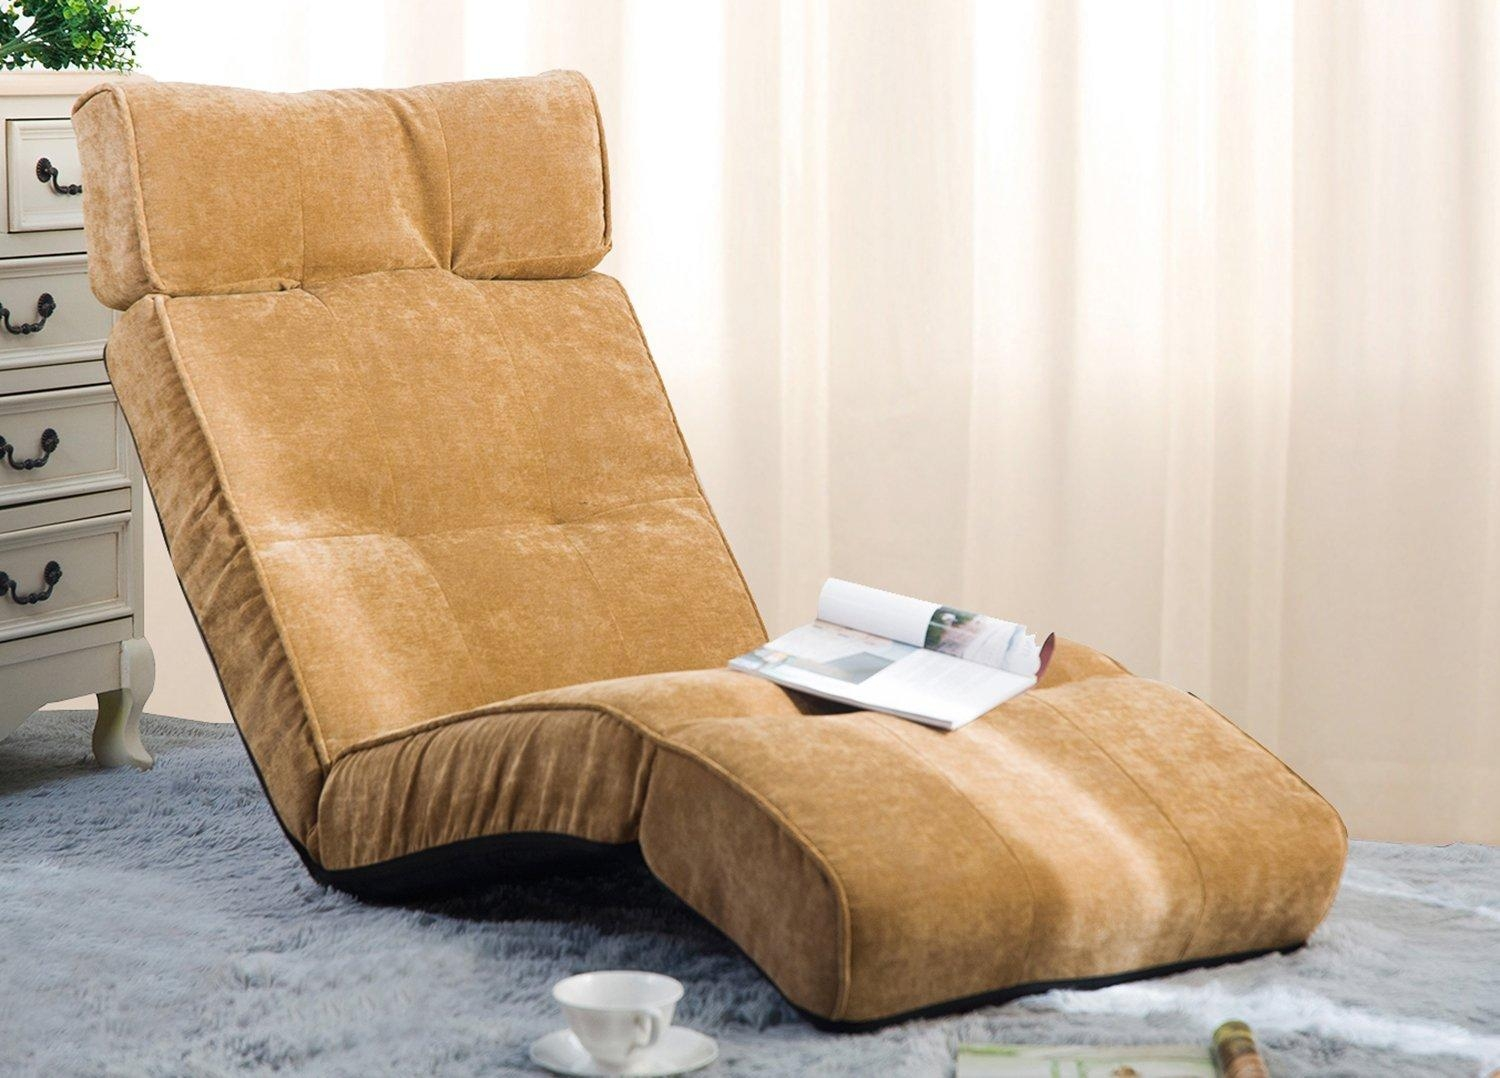 Merax Adjustable Folding Floor Couch Lounger Sofa Chair – Folding With Regard To Lazy Sofa Chairs (View 2 of 20)